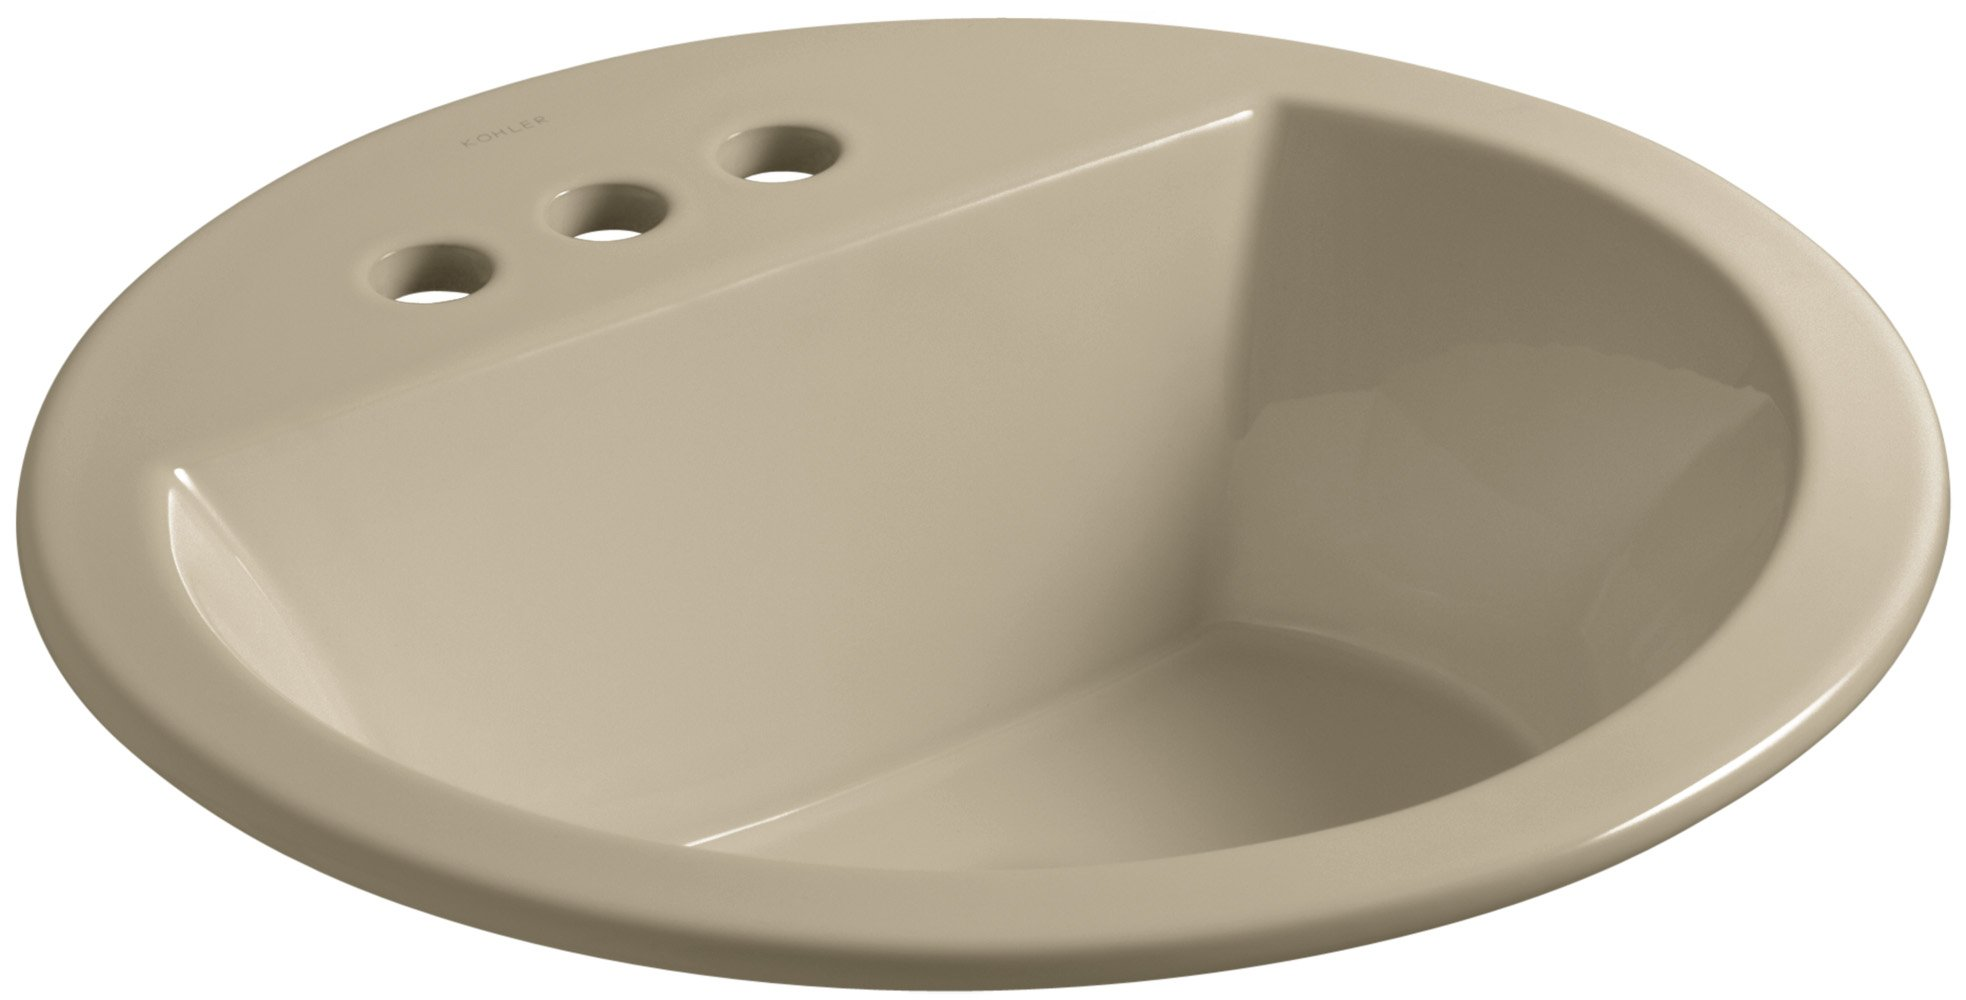 KOHLER K-2714-4-33 Bryant  Round Self-Rimming Bathroom Sink with 4'' Centers, Mexican Sand